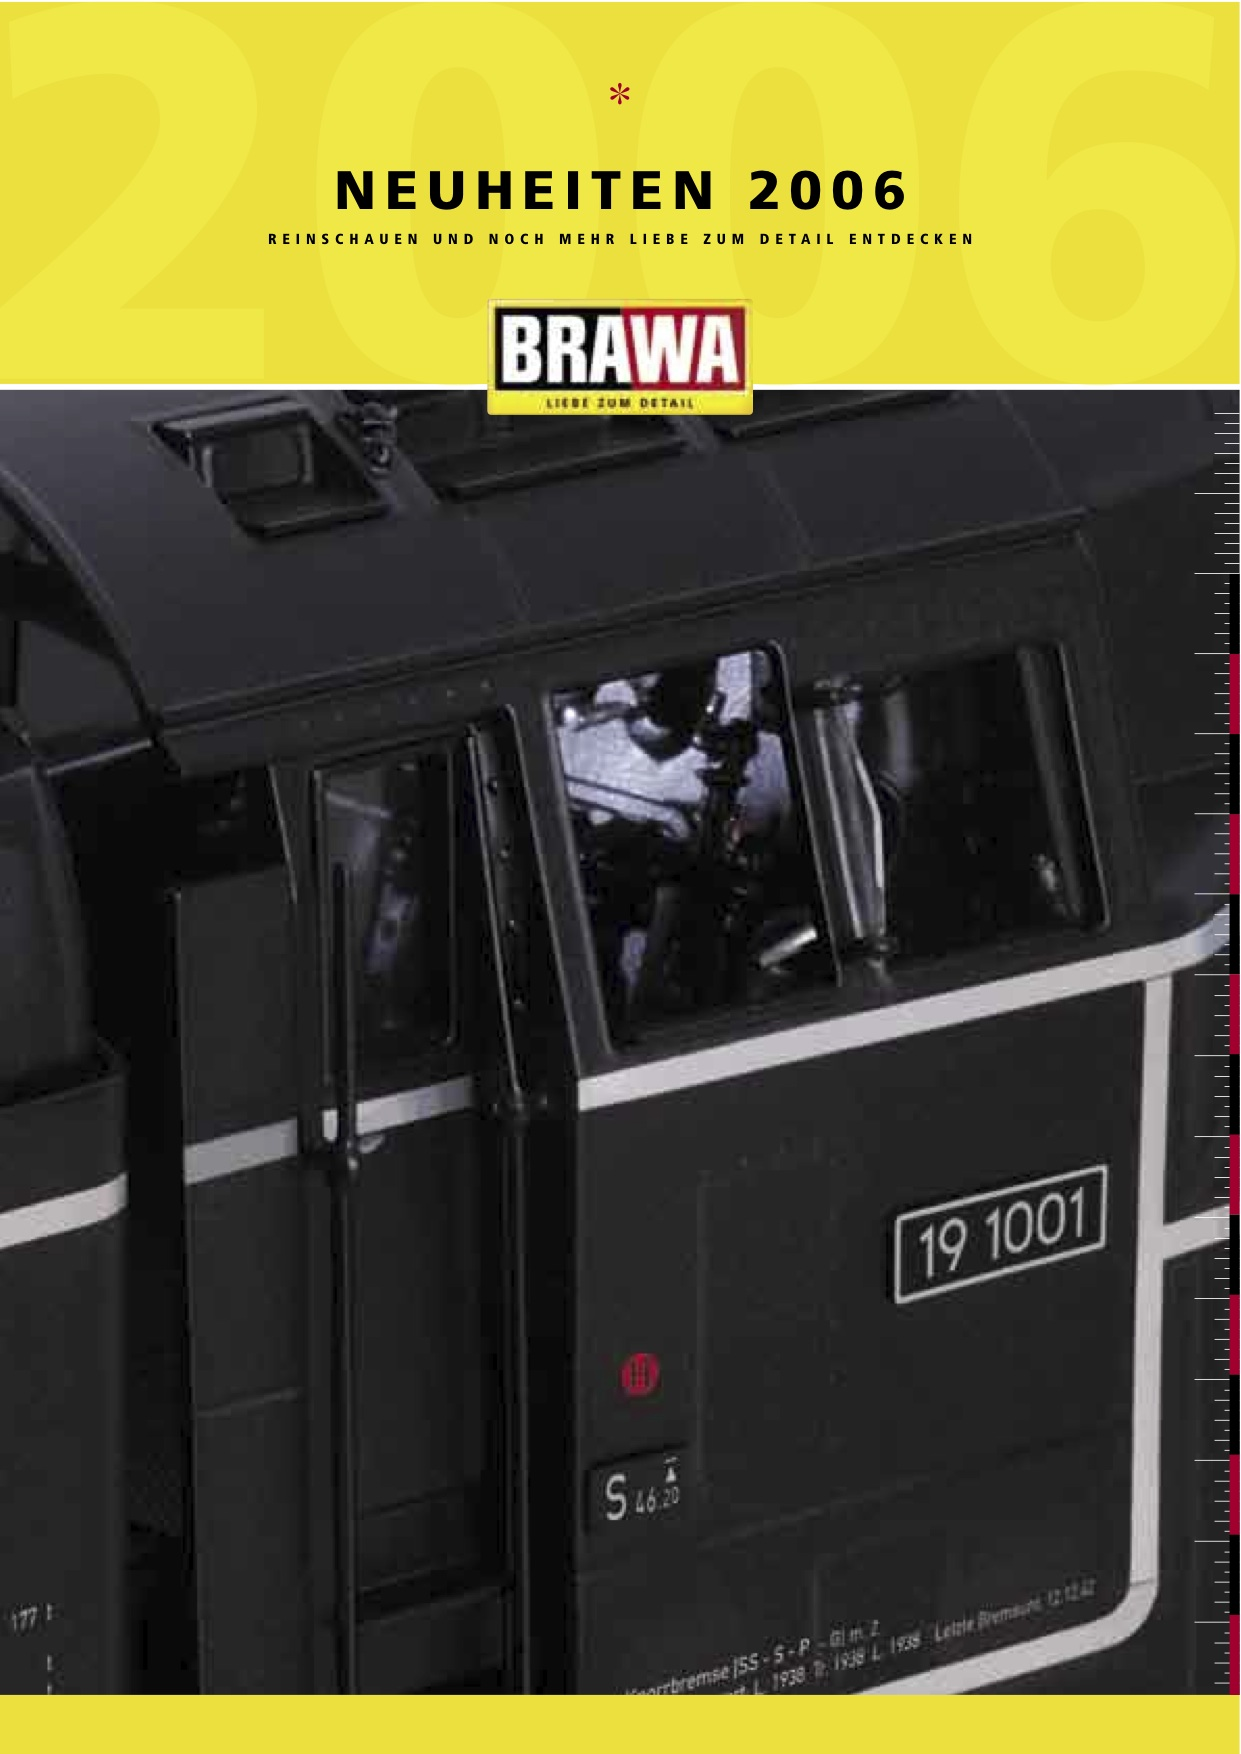 Brawa Neuheiten (New Items) 2006